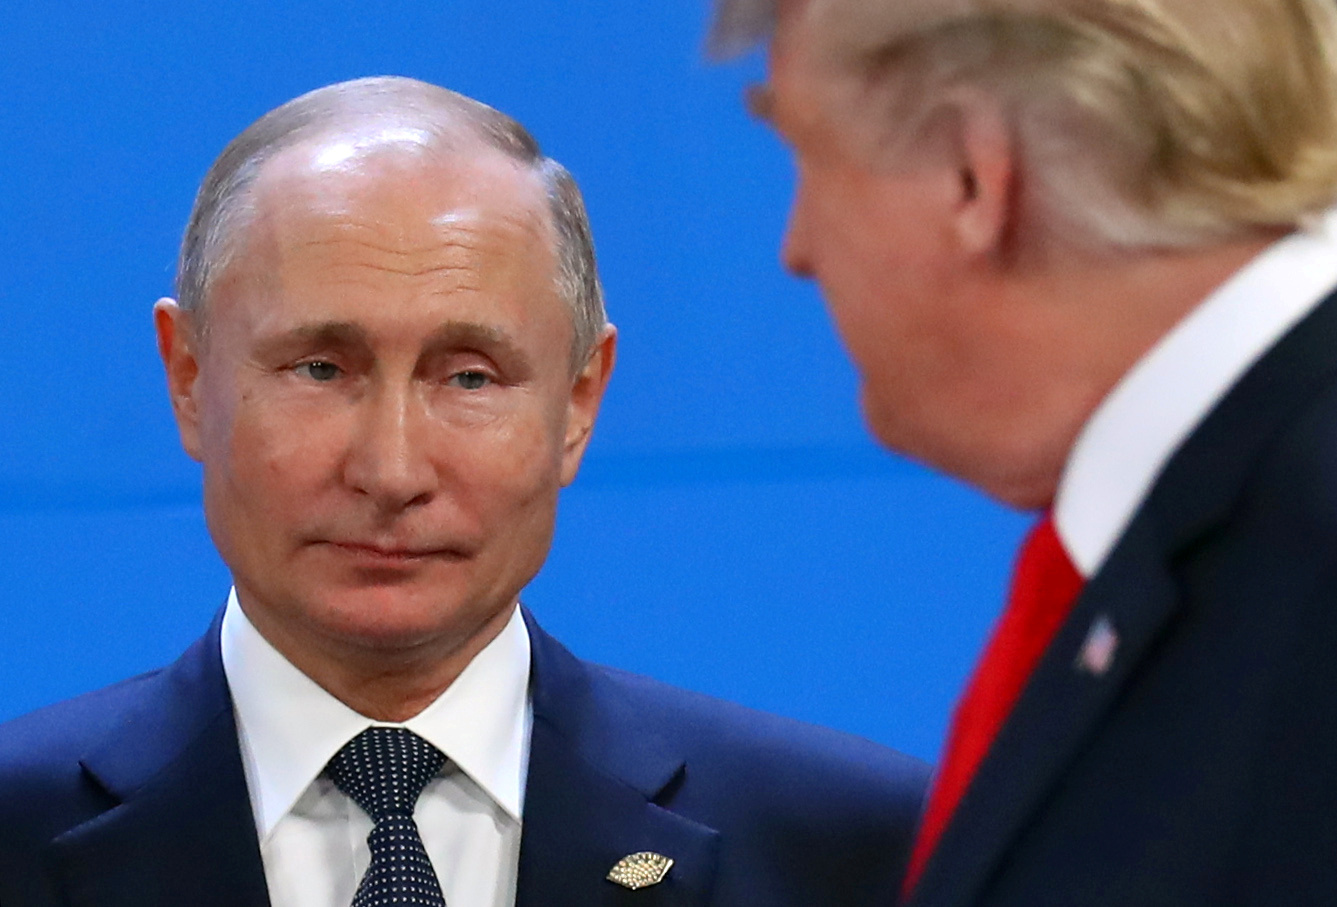 FILE PHOTO: Russia's President Vladimir Putin and U.S. President Donald Trump are seen during the G20 summit in Buenos Aires, Argentina November 30, 2018. REUTERS/Marcos Brindicci/File Pho